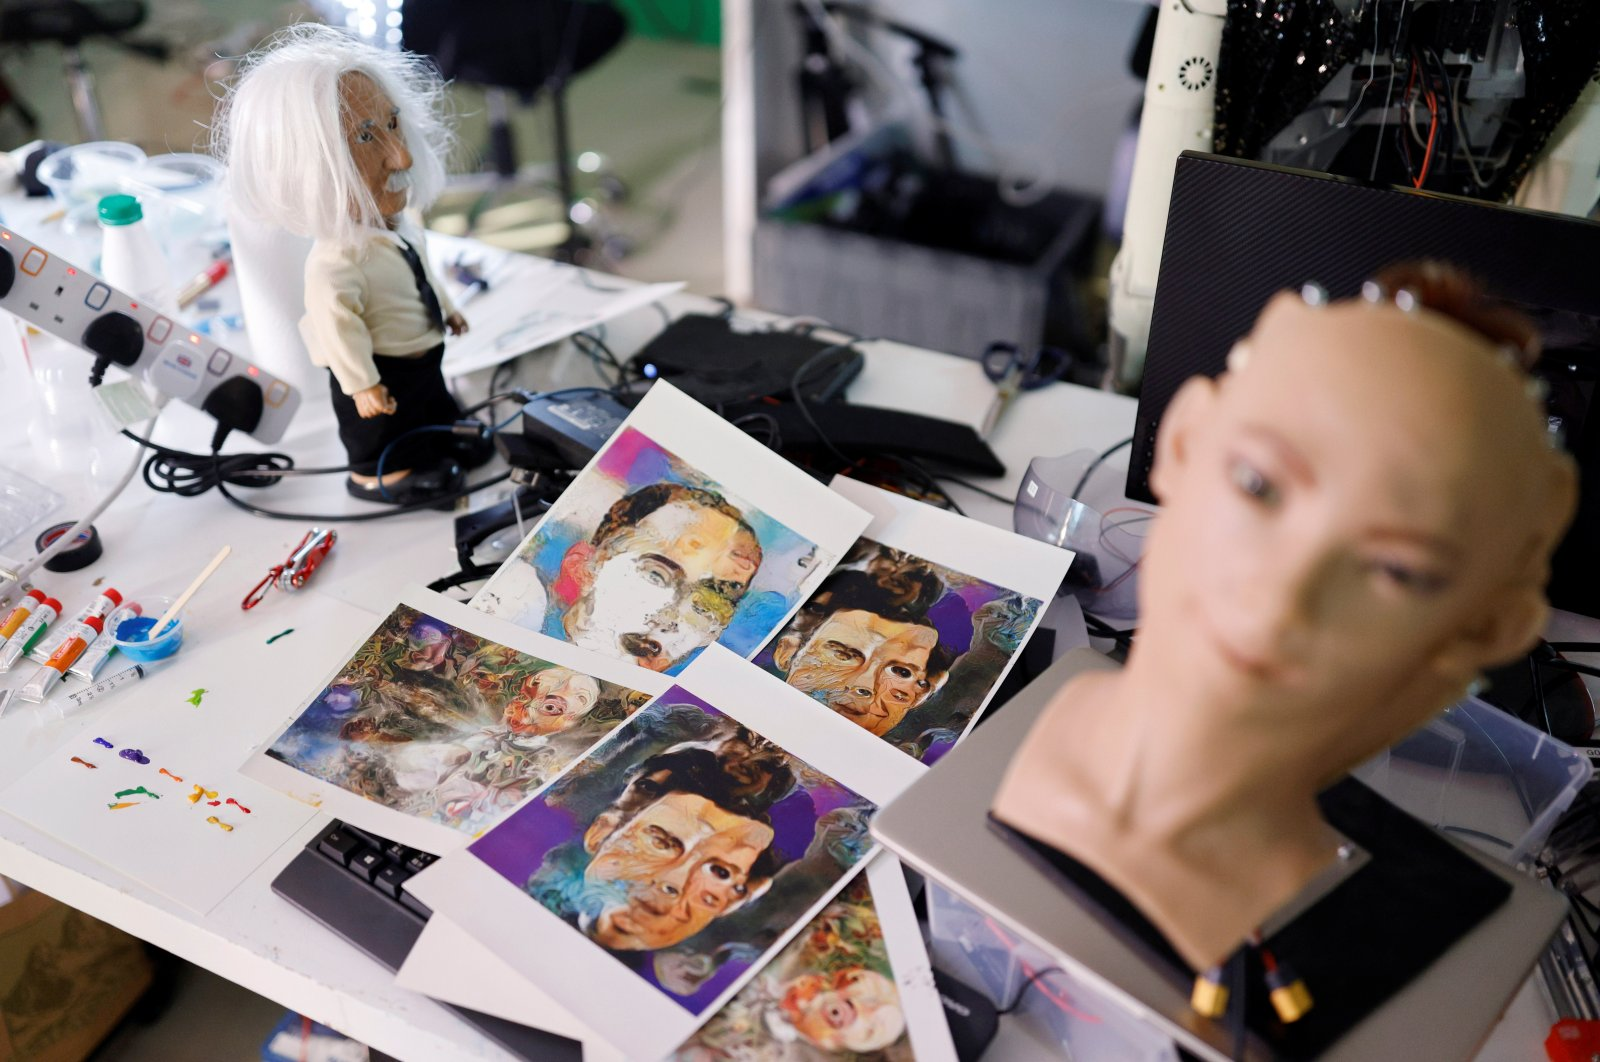 Paintings of humanoid robot Sophia are seen at her studio before auctioning her own nonfungible token (NFT) artwork, in Hong Kong, China, March 17, 2021. (REUTERS Photo)